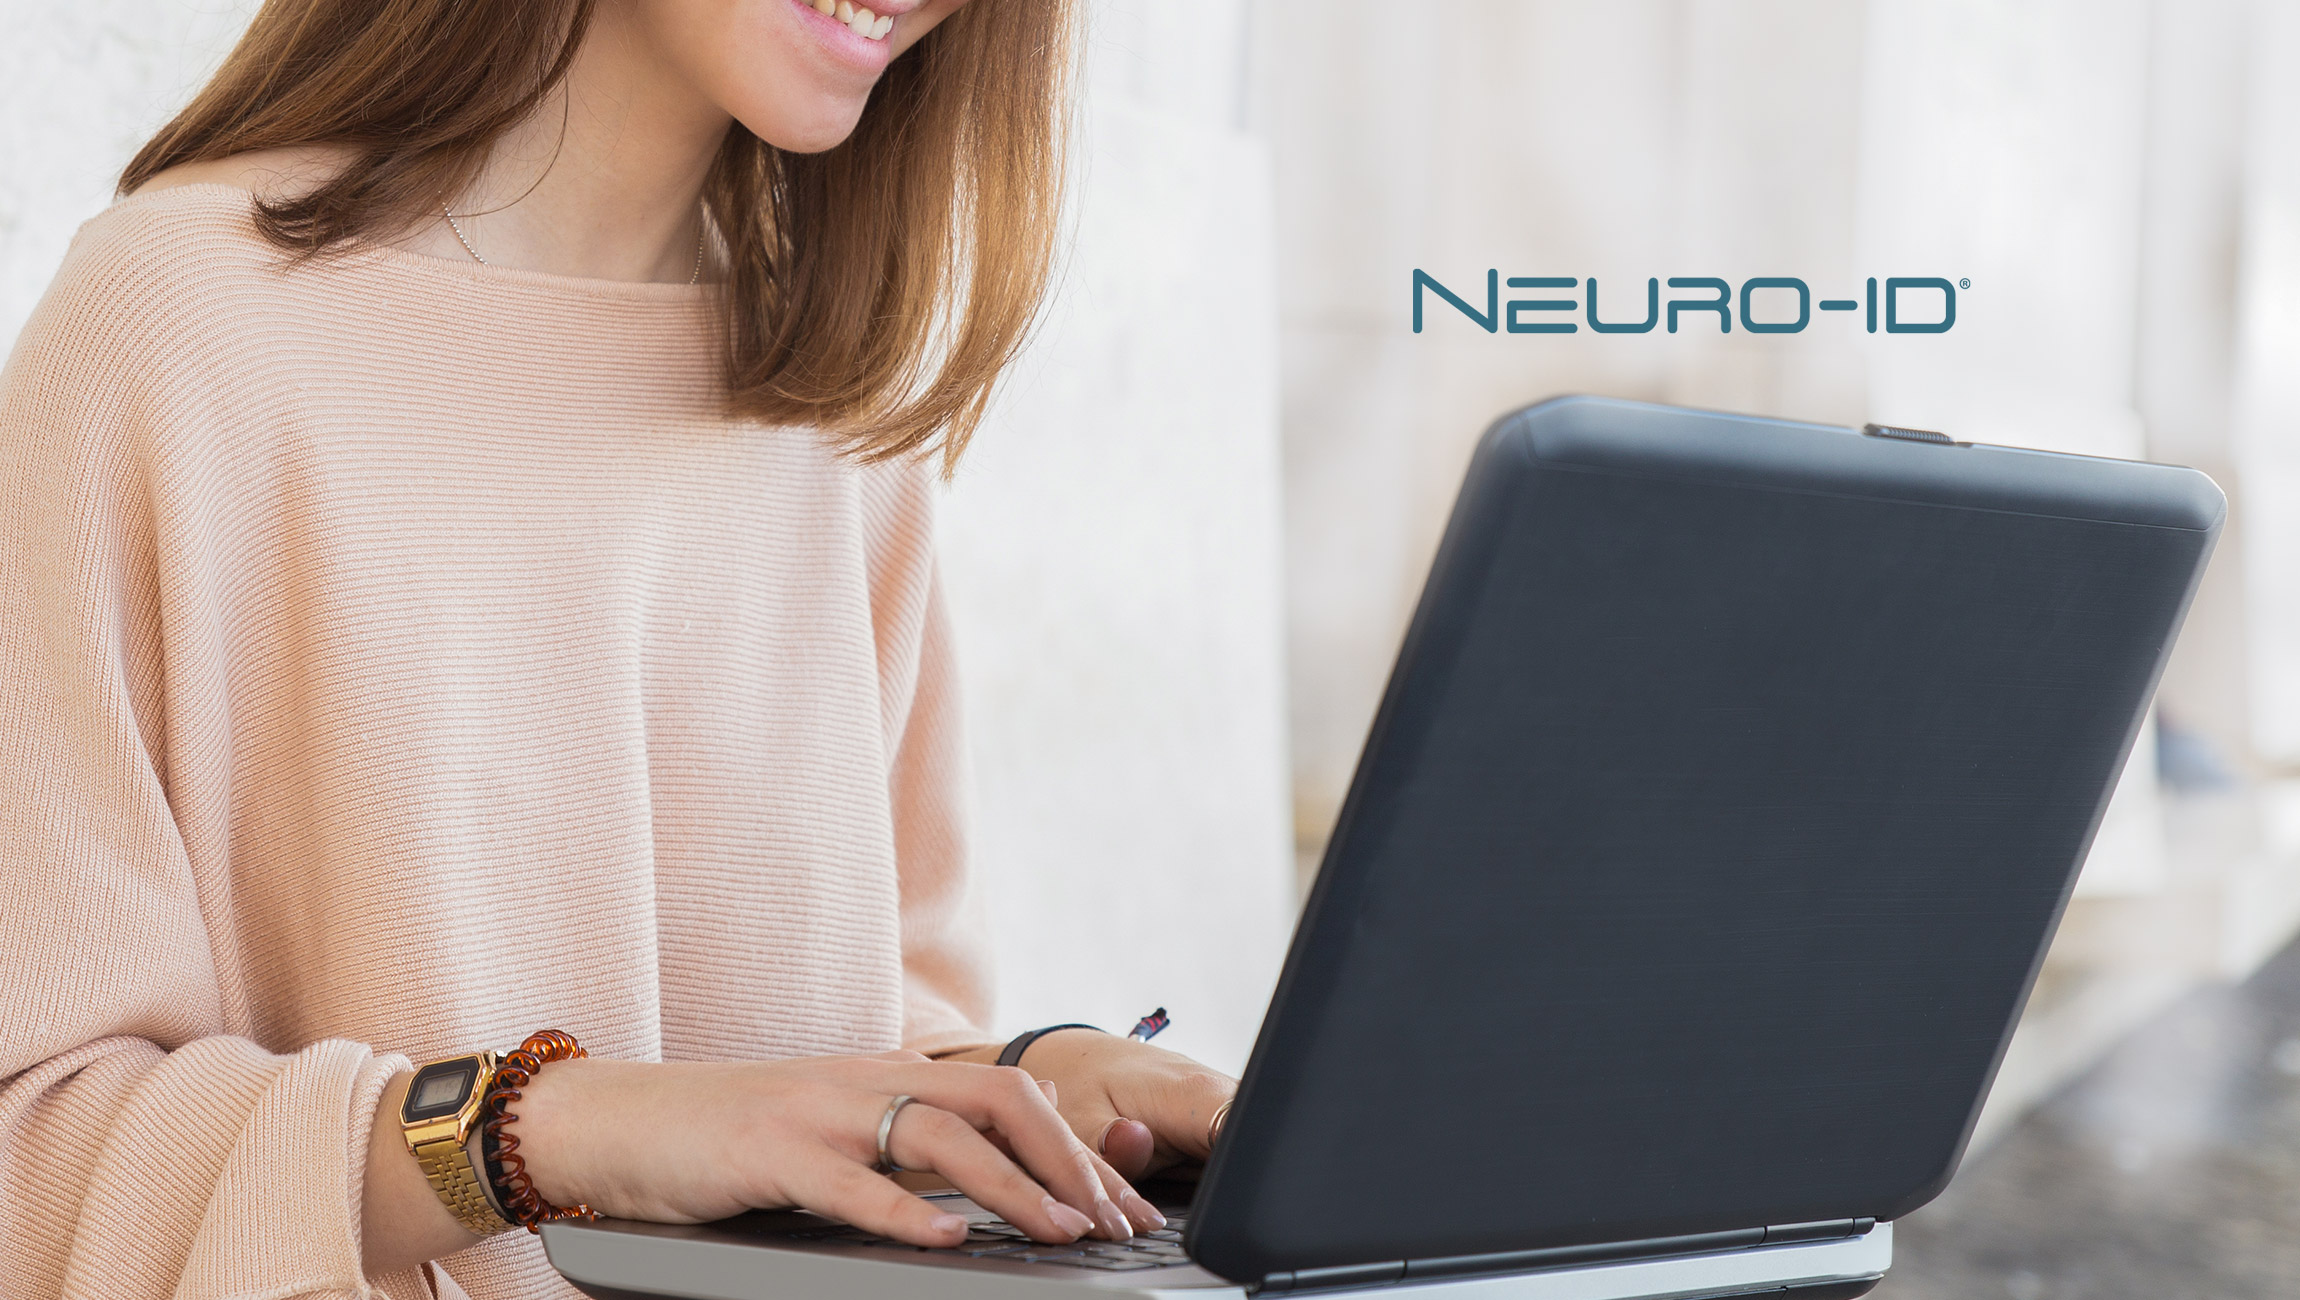 Neuro-ID Introduces Groundbreaking Source of Real-Time Behavioral Intelligence to Predict Customer Outcomes and Enhance the Digital CX